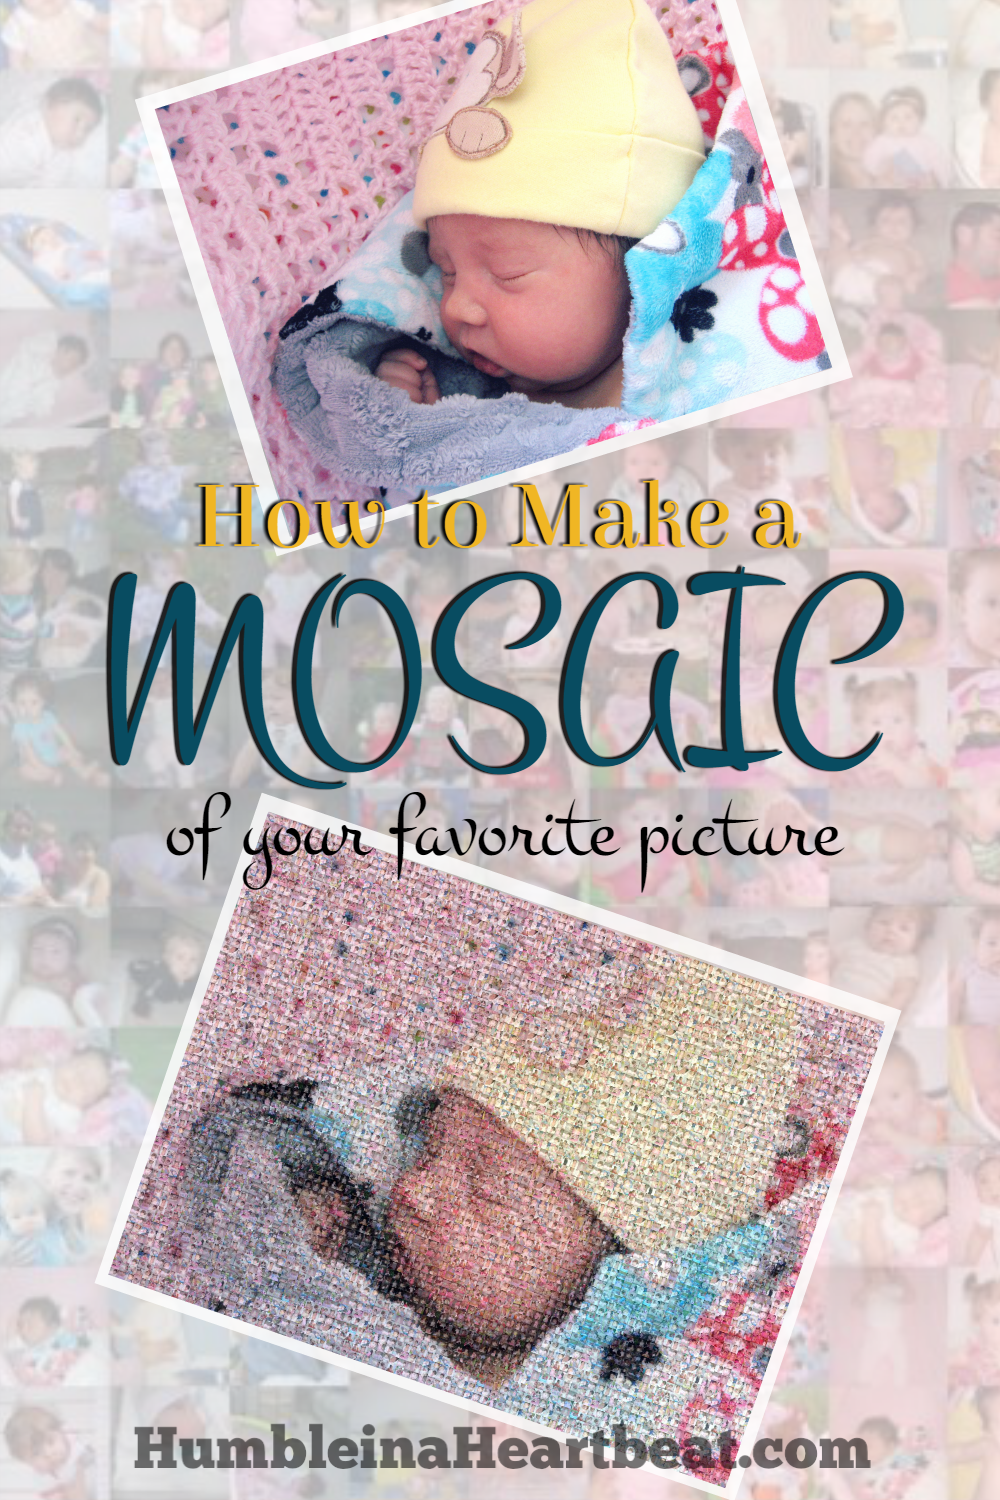 Trouble finding just the perfect picture to hang on your wall? Why not hang them all by creating a photo mosaic of your favorite picture? It's easy, cheap, and a real ice breaker!